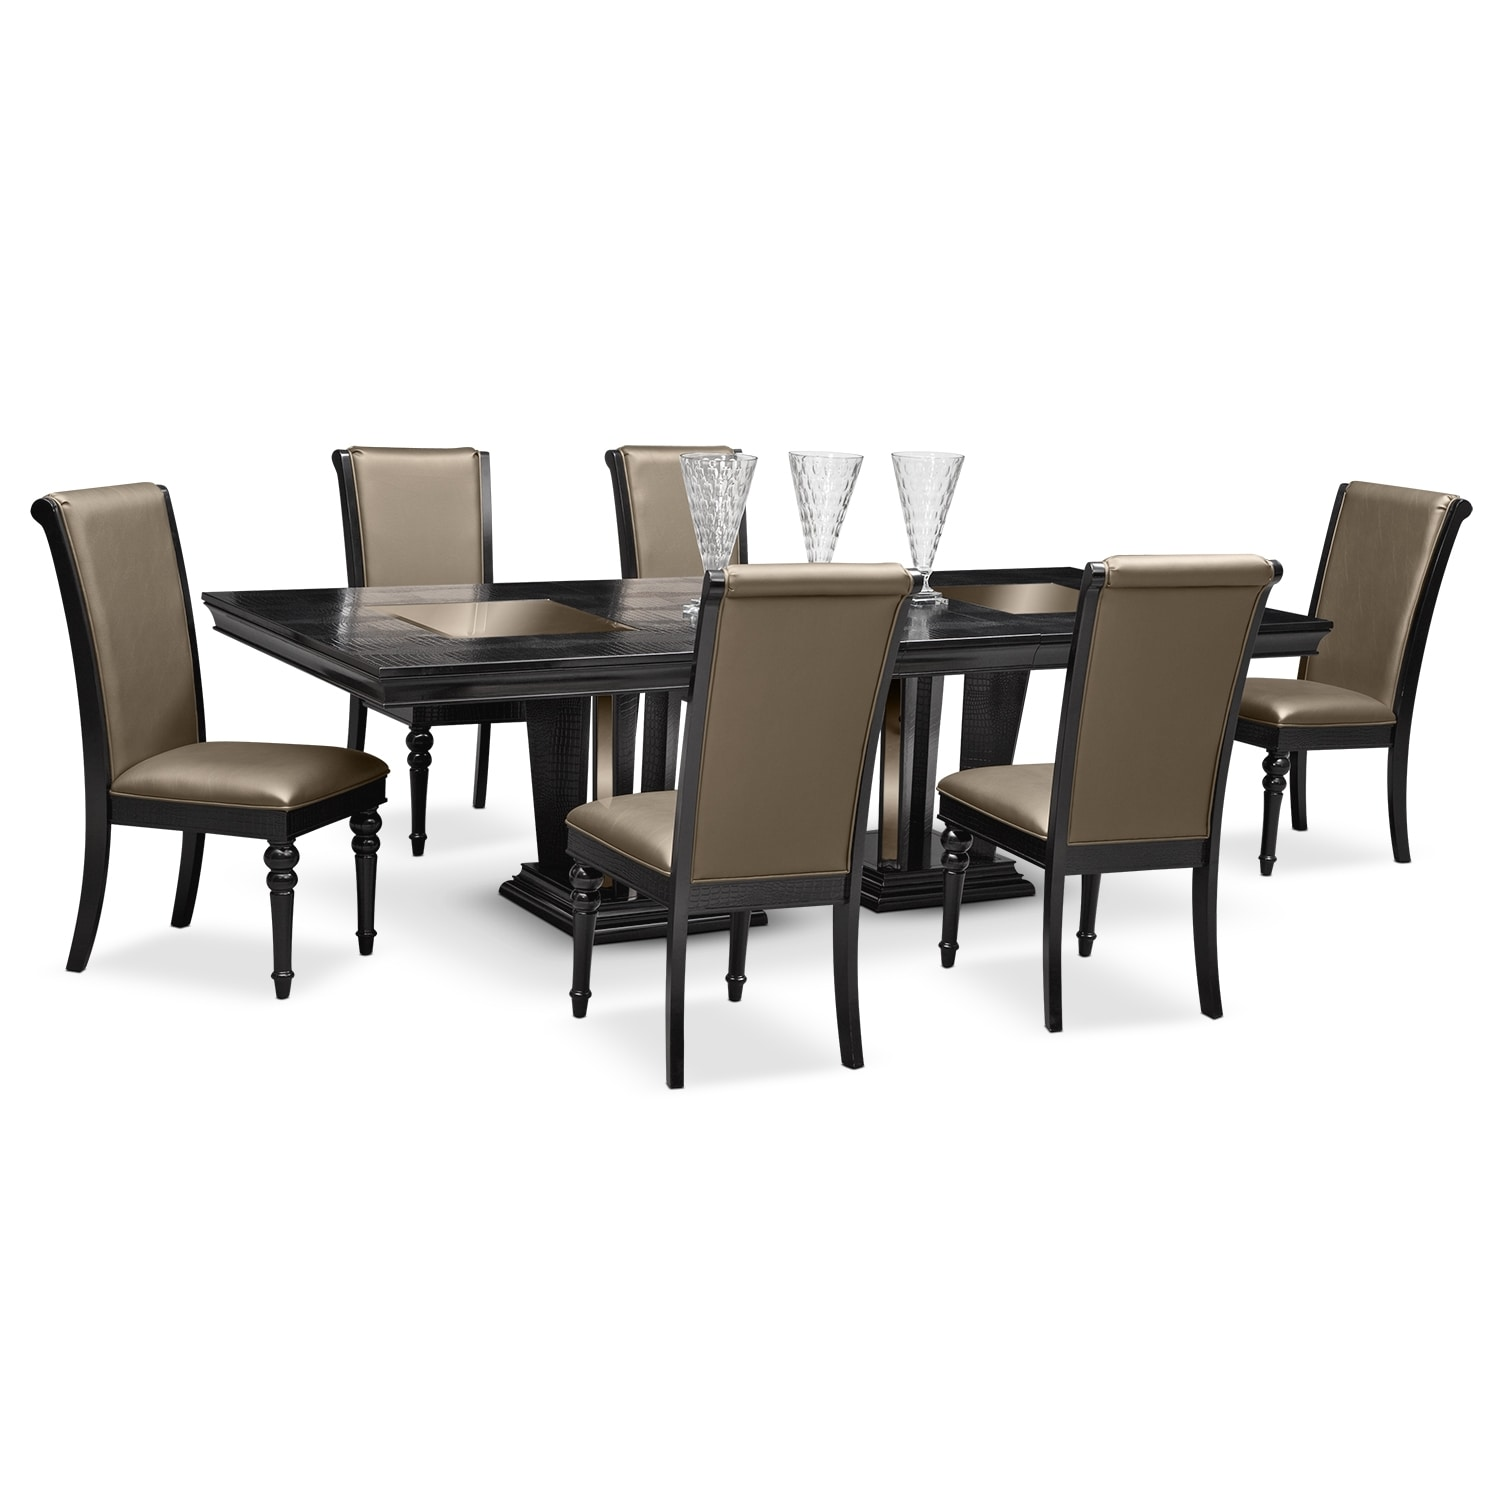 ($ - $3,) Find great deals on the latest styles of American signature dining room furniture. Compare prices & save money on Dining Room Furniture. Suggestions. shop by categories. Related Searches: less. The Liam Dining Set embodies the essence of the American .